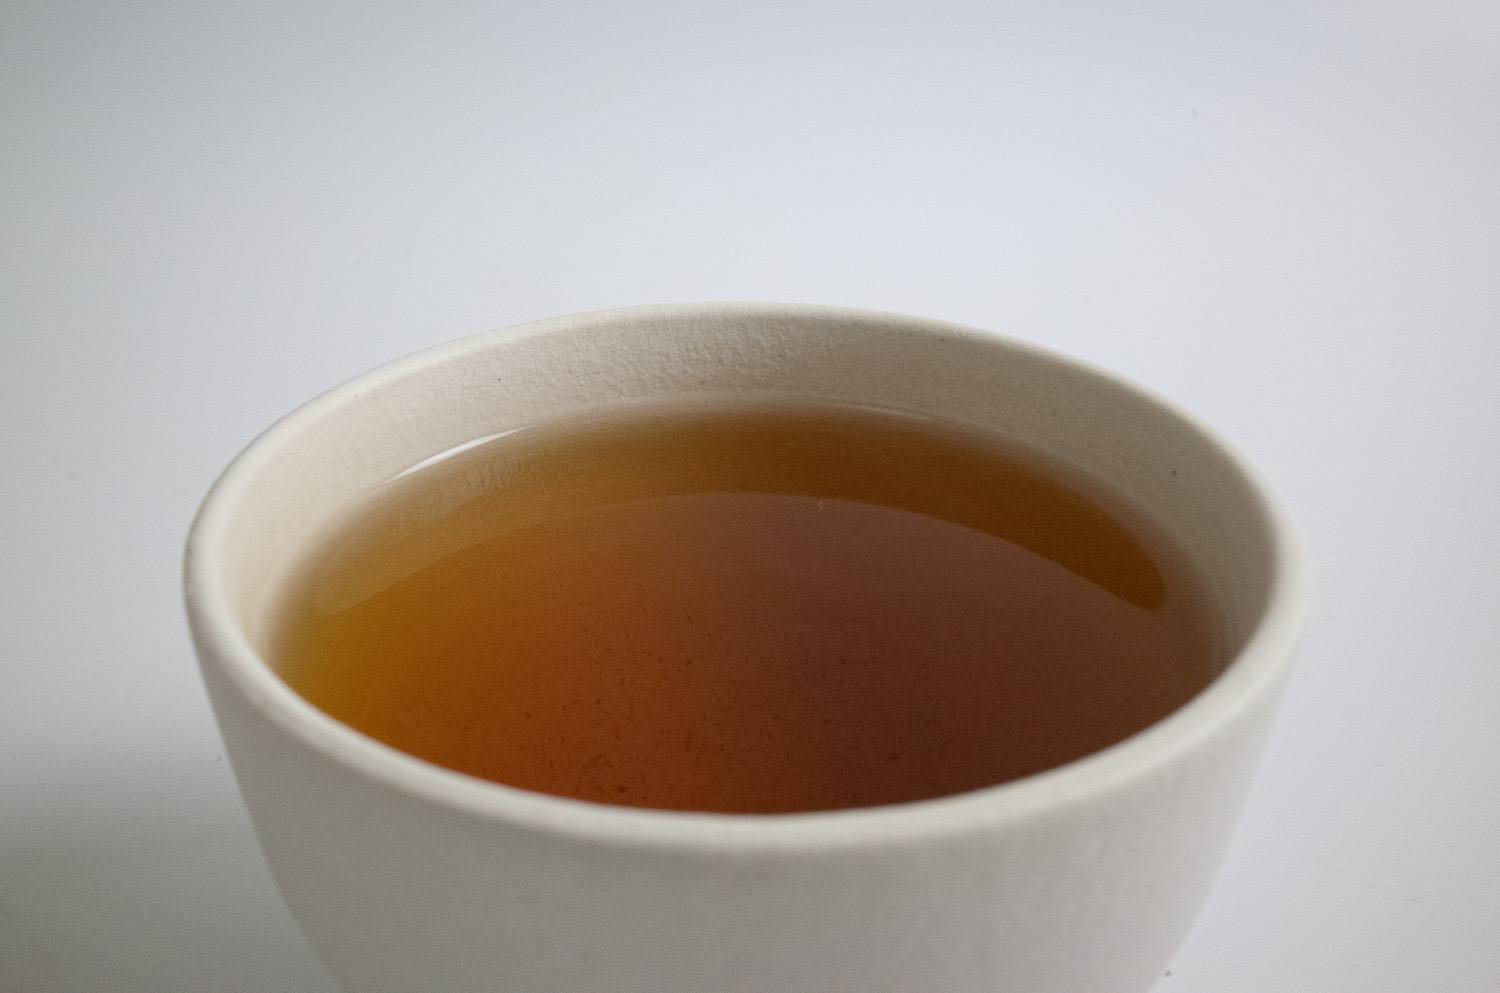 What Kinds of Ingredients/Nutrition are in Hojicha?